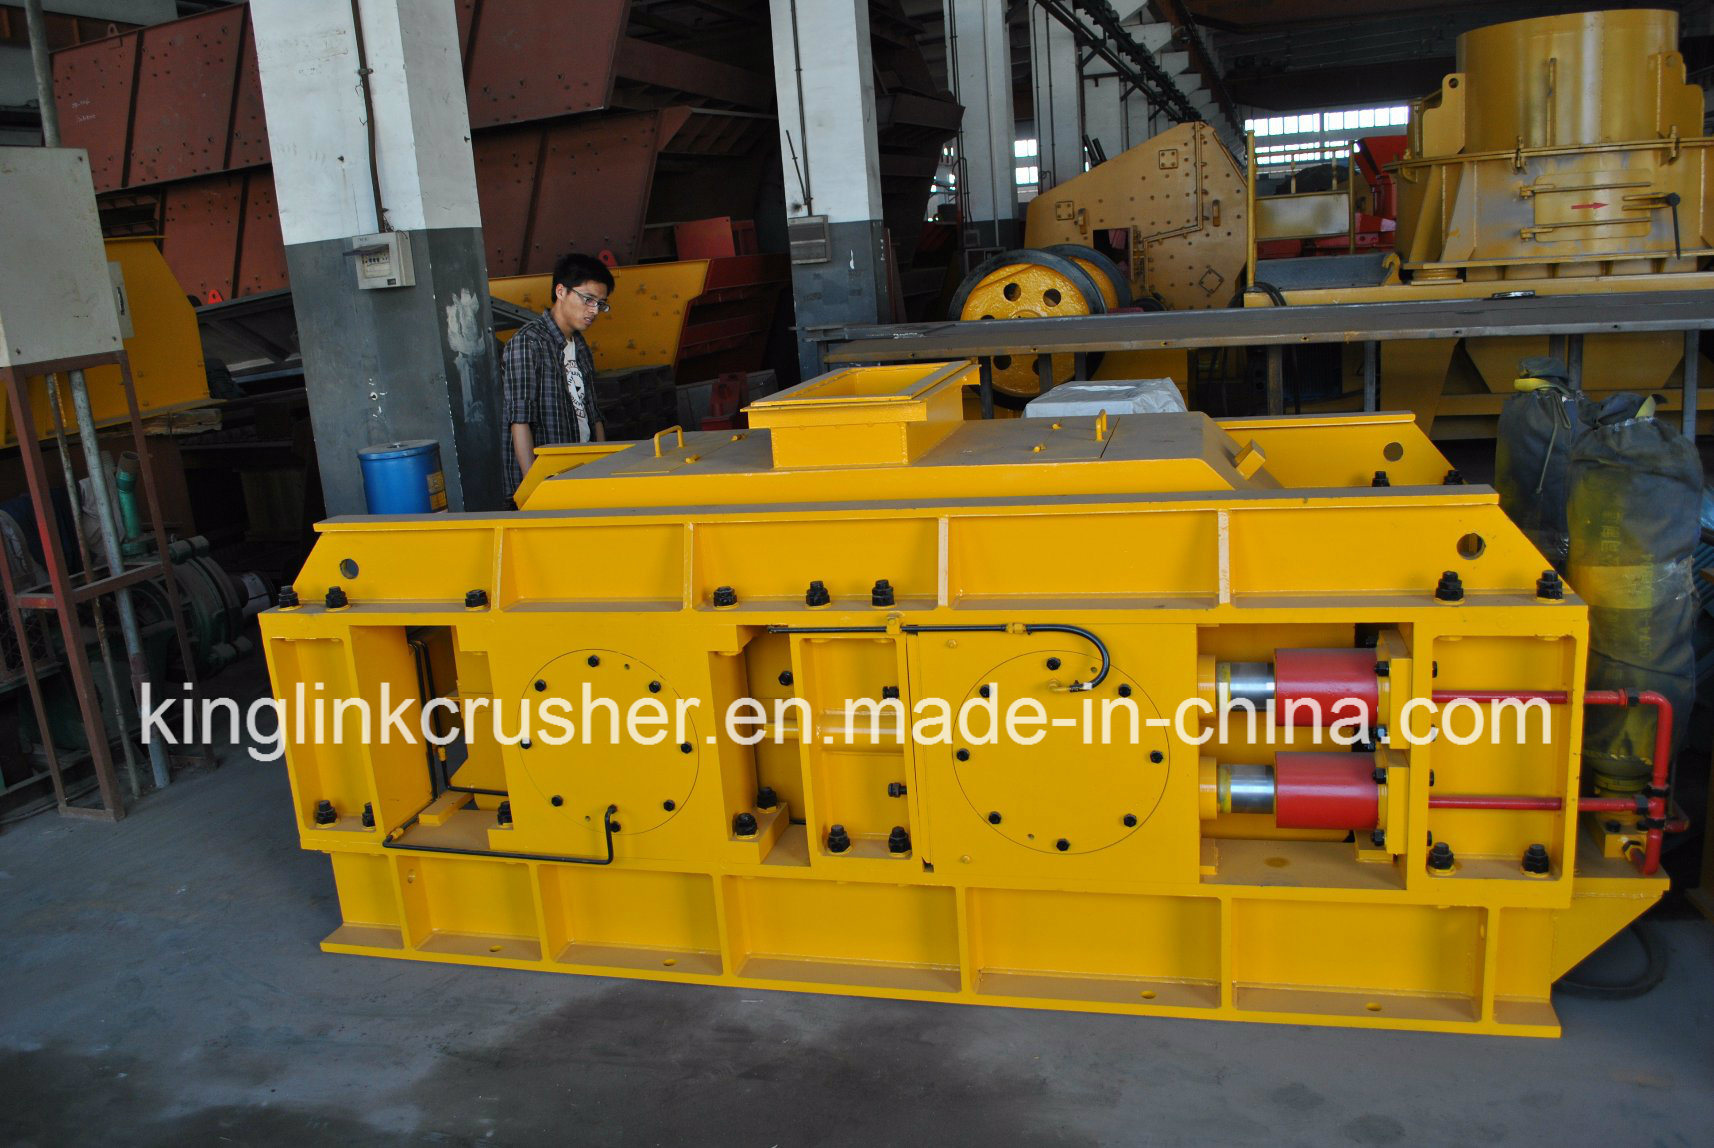 Double Roller Sizing Crusher for Coal and Others Ore Stone Crushing